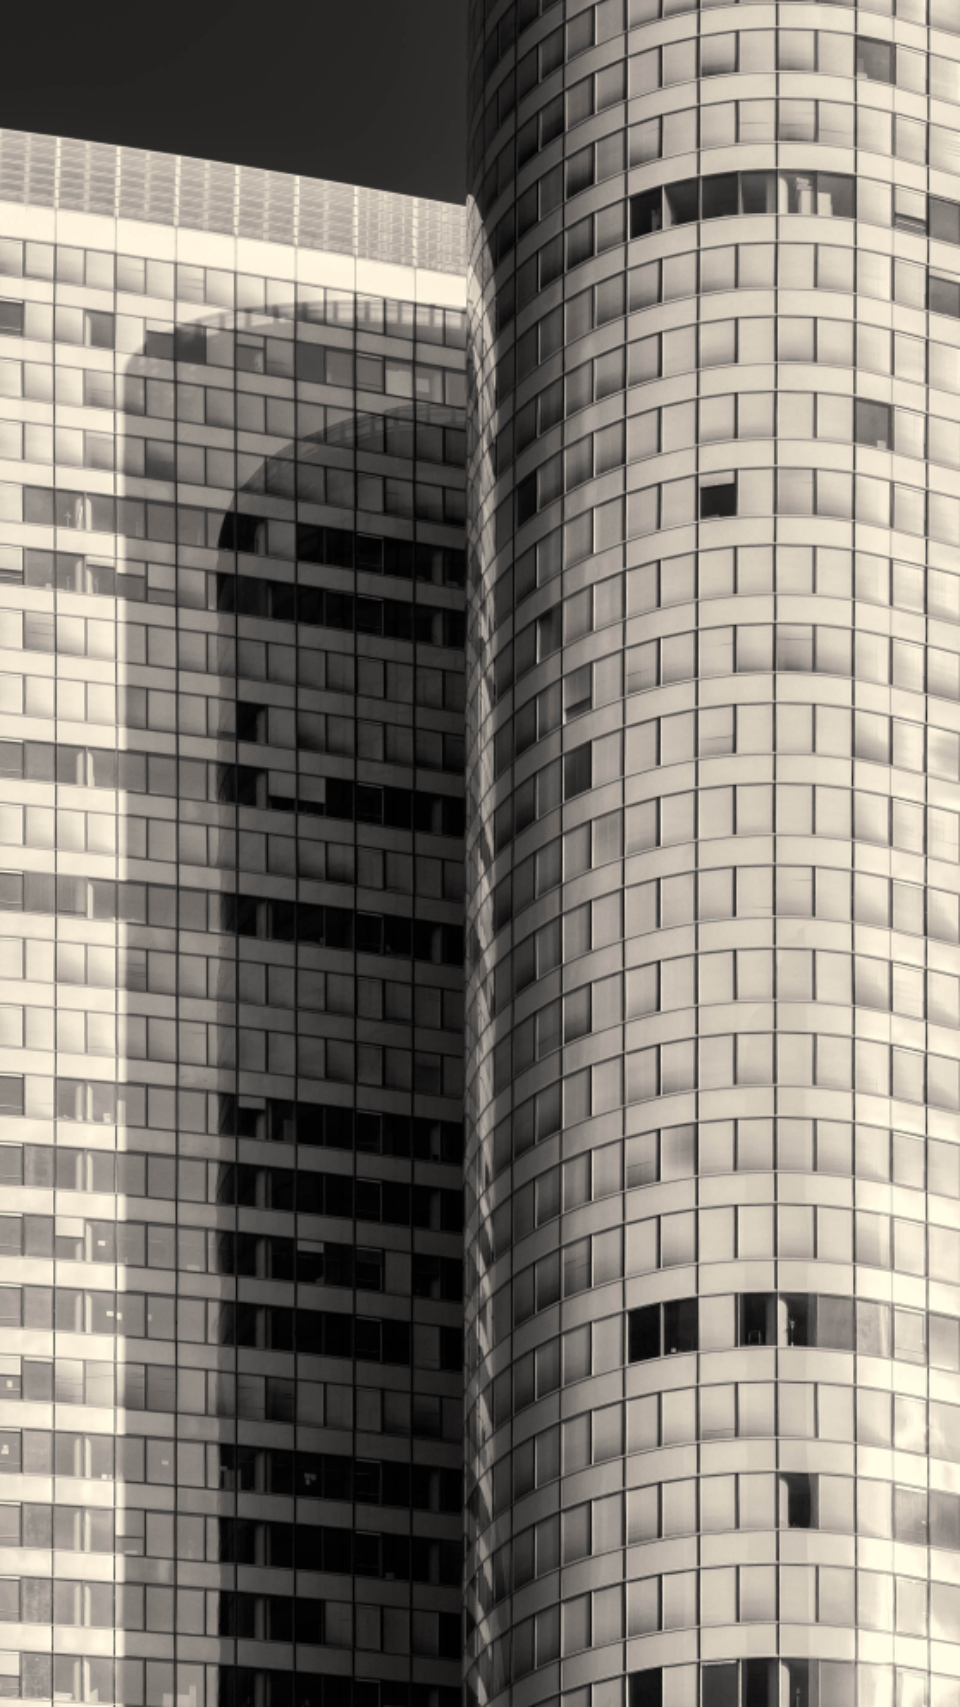 city buildings windows close up skyscrapers downtown urban offices workplace architecture desaturated